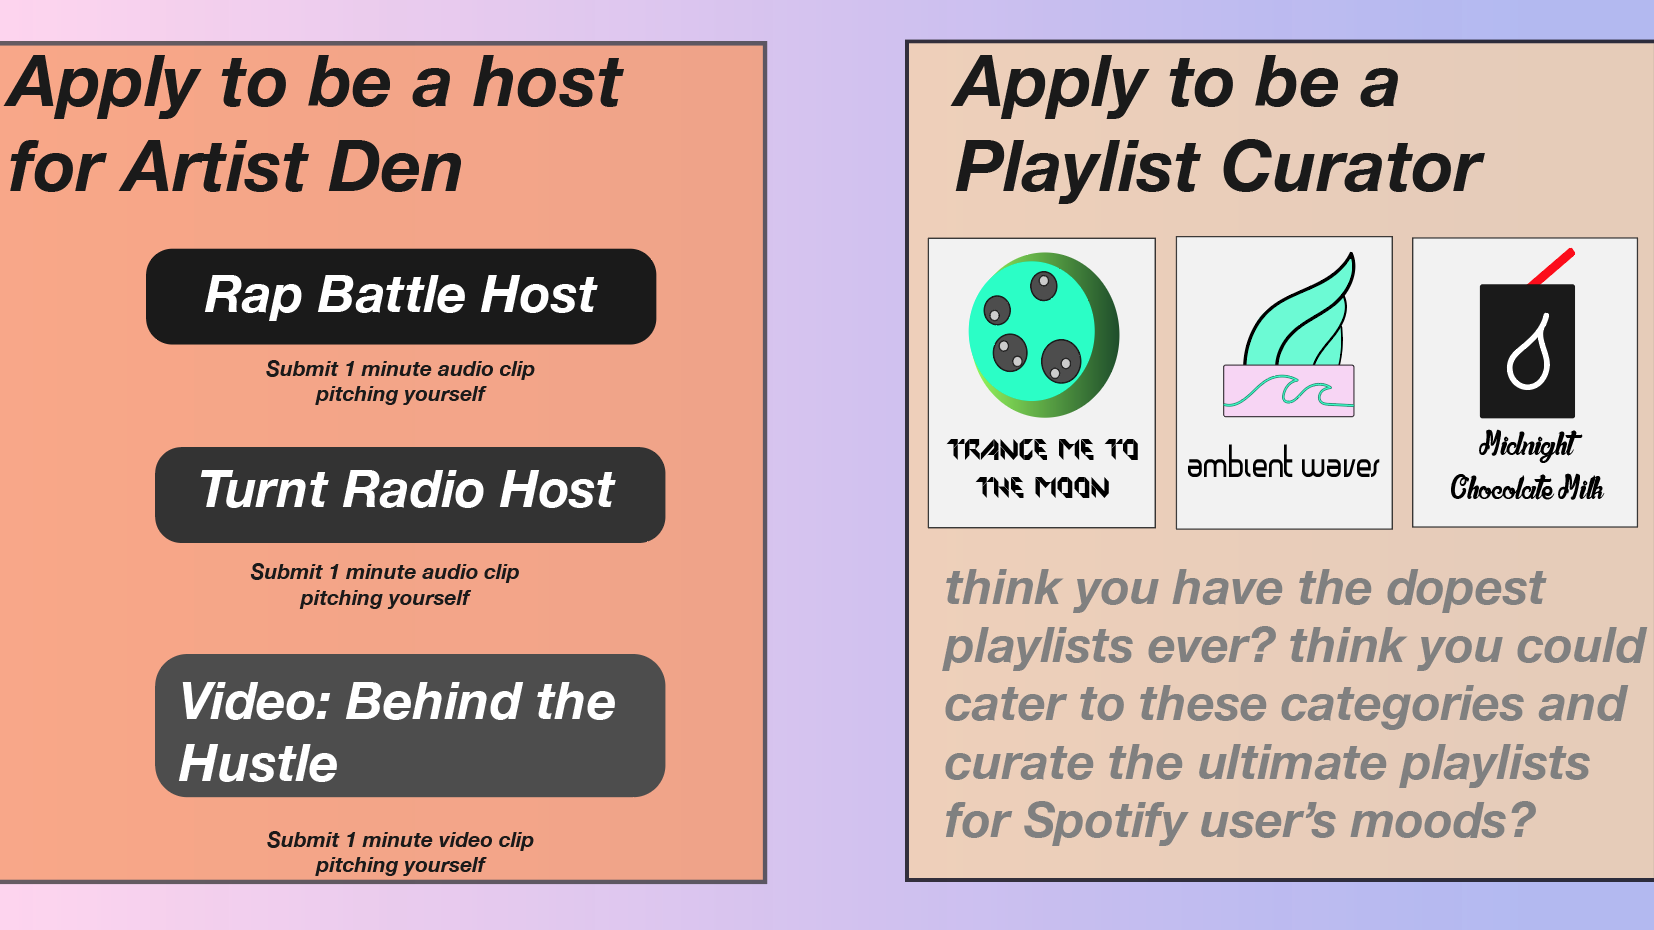 Invite artists to become curators - to host and curate content, on Artist Den and become Playlist Curators to be featured on the homepage as hosts